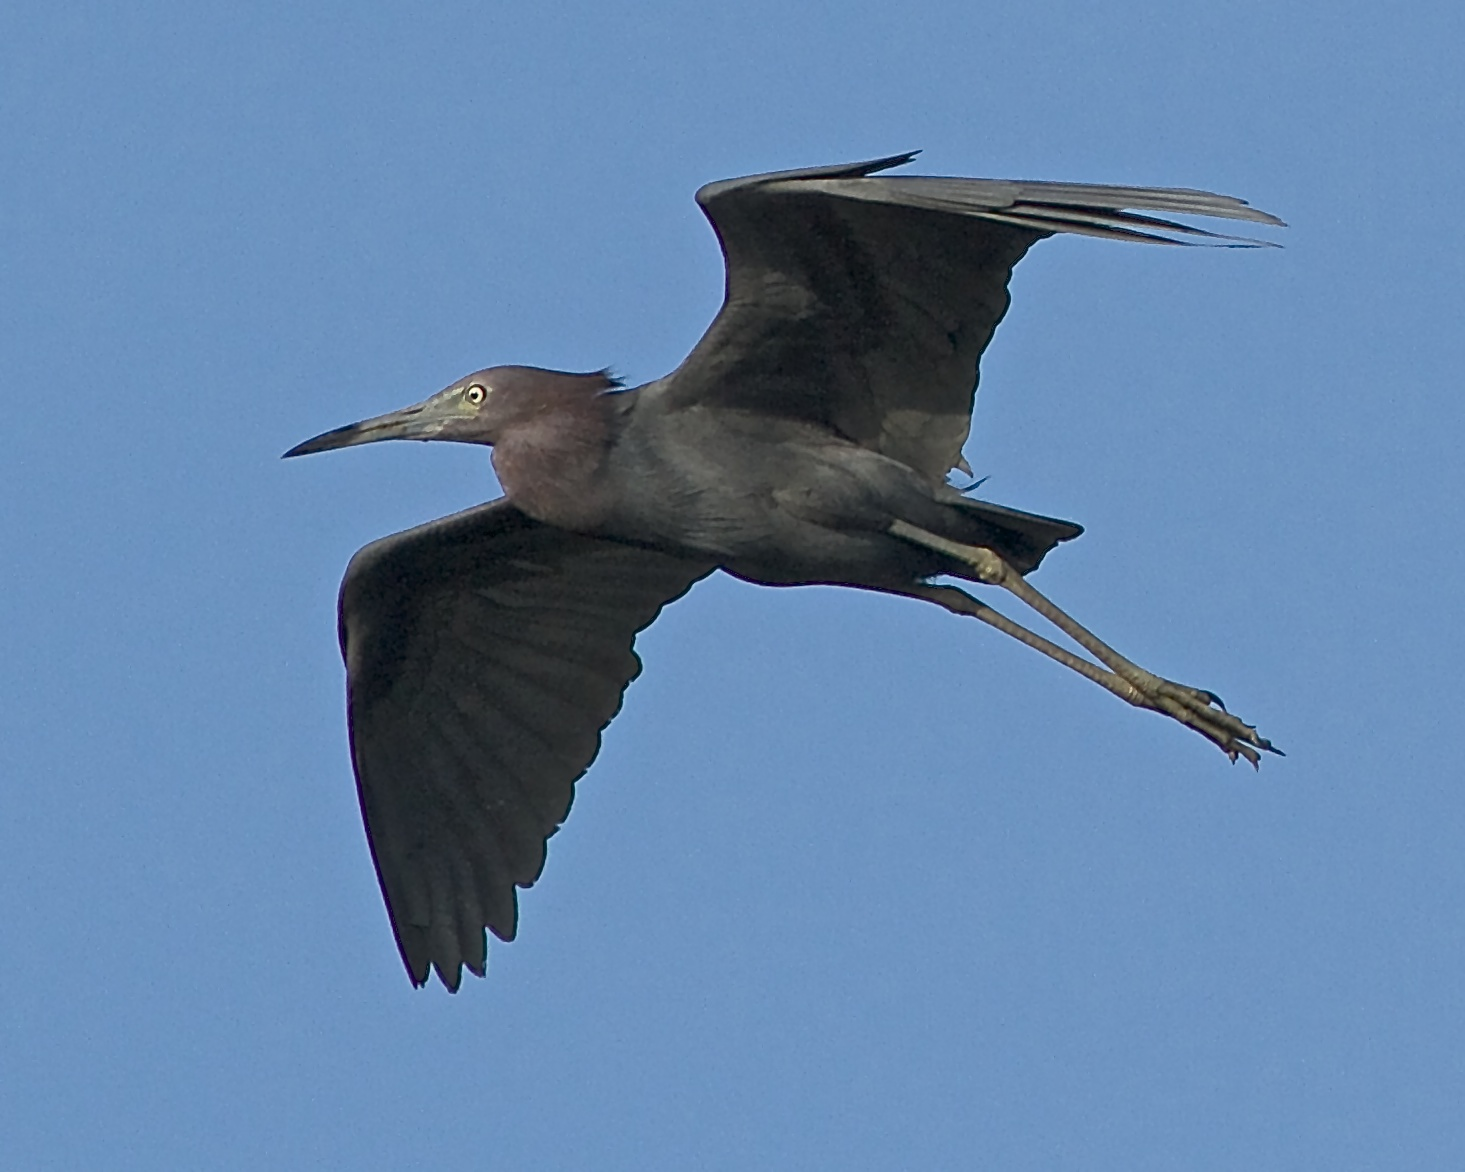 """Floating on a  Summer Breeze , the  Little Blue Heron wings by on a sky bl  ue morning!   """"Summer Breeze, makes me feel fine, blowing like the jasmine in my mind! """""""